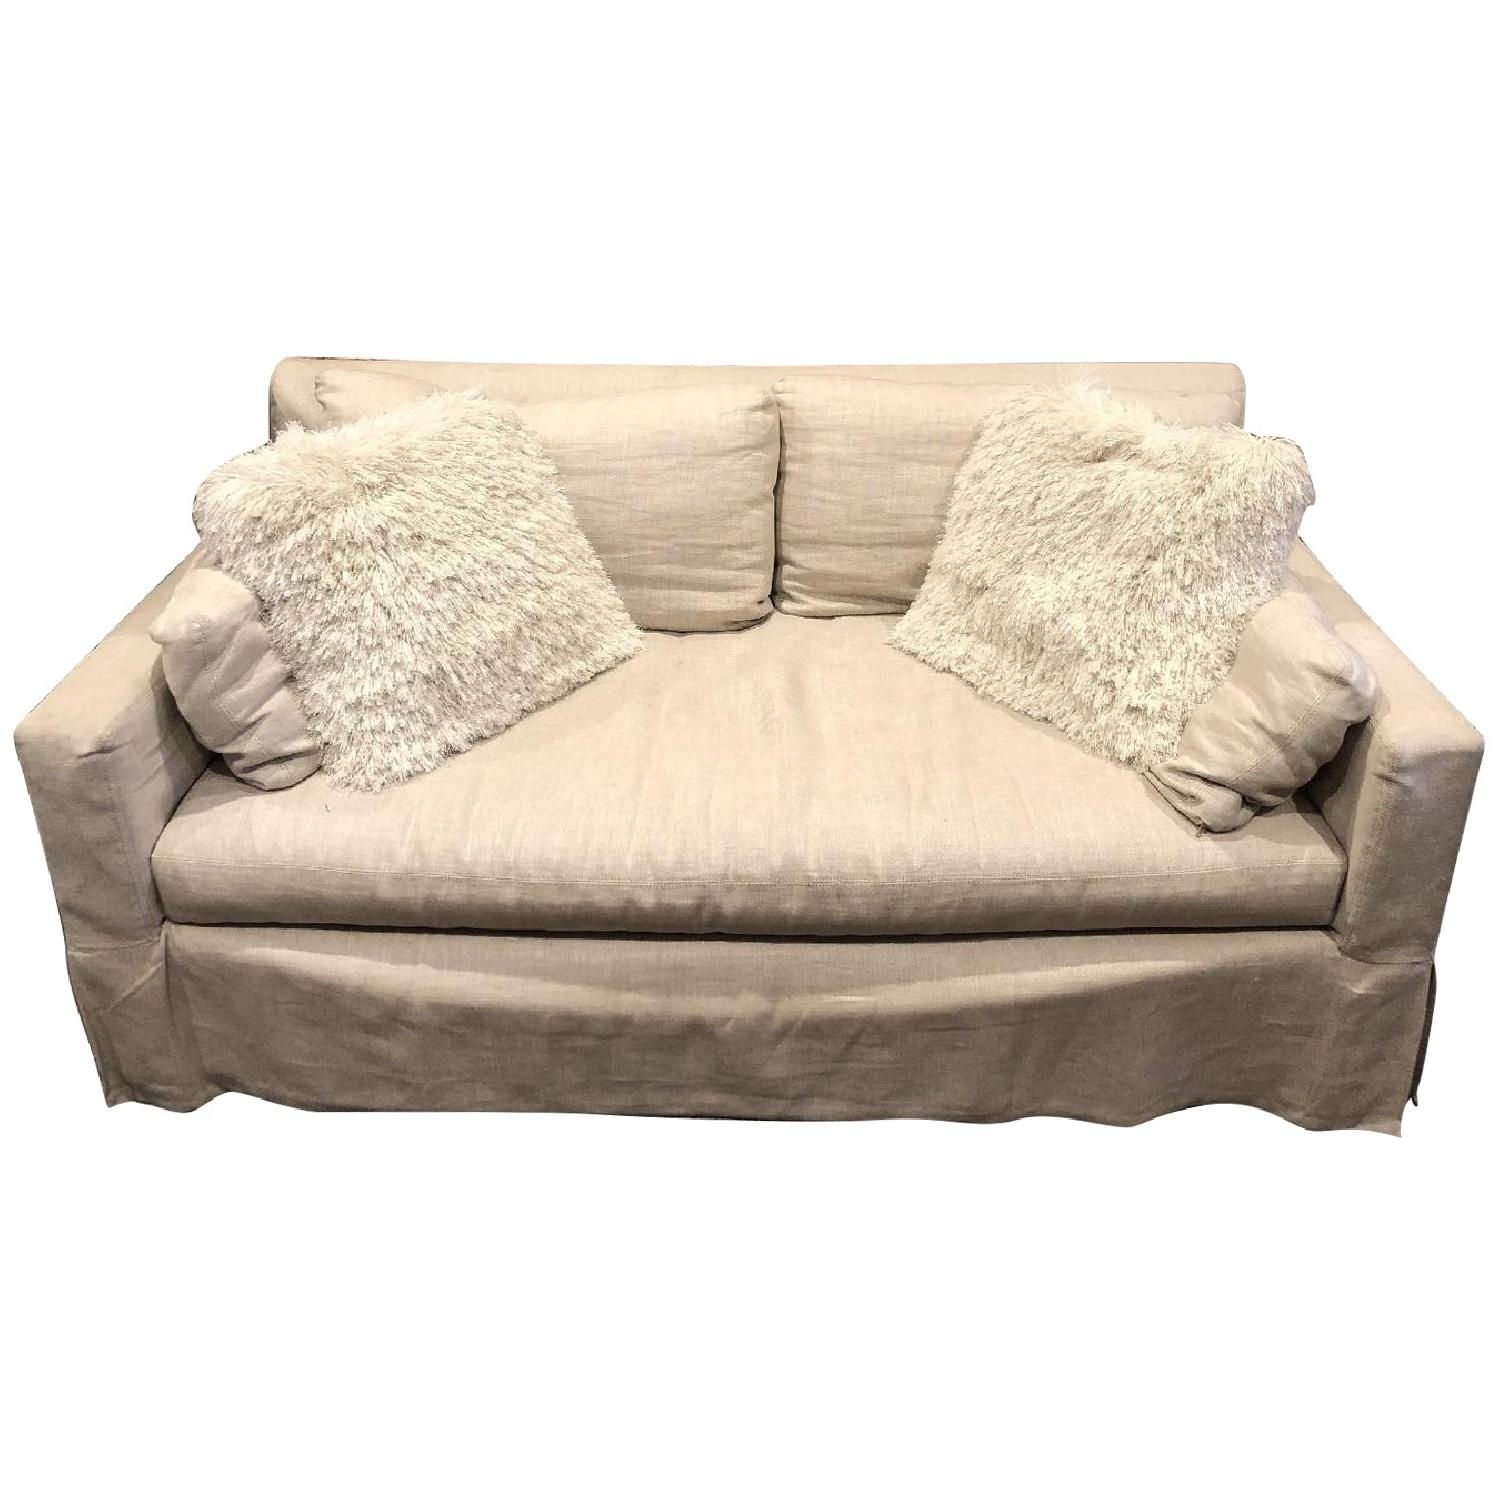 Restoration Hardware Belgian Linen Slipcovered Sofa